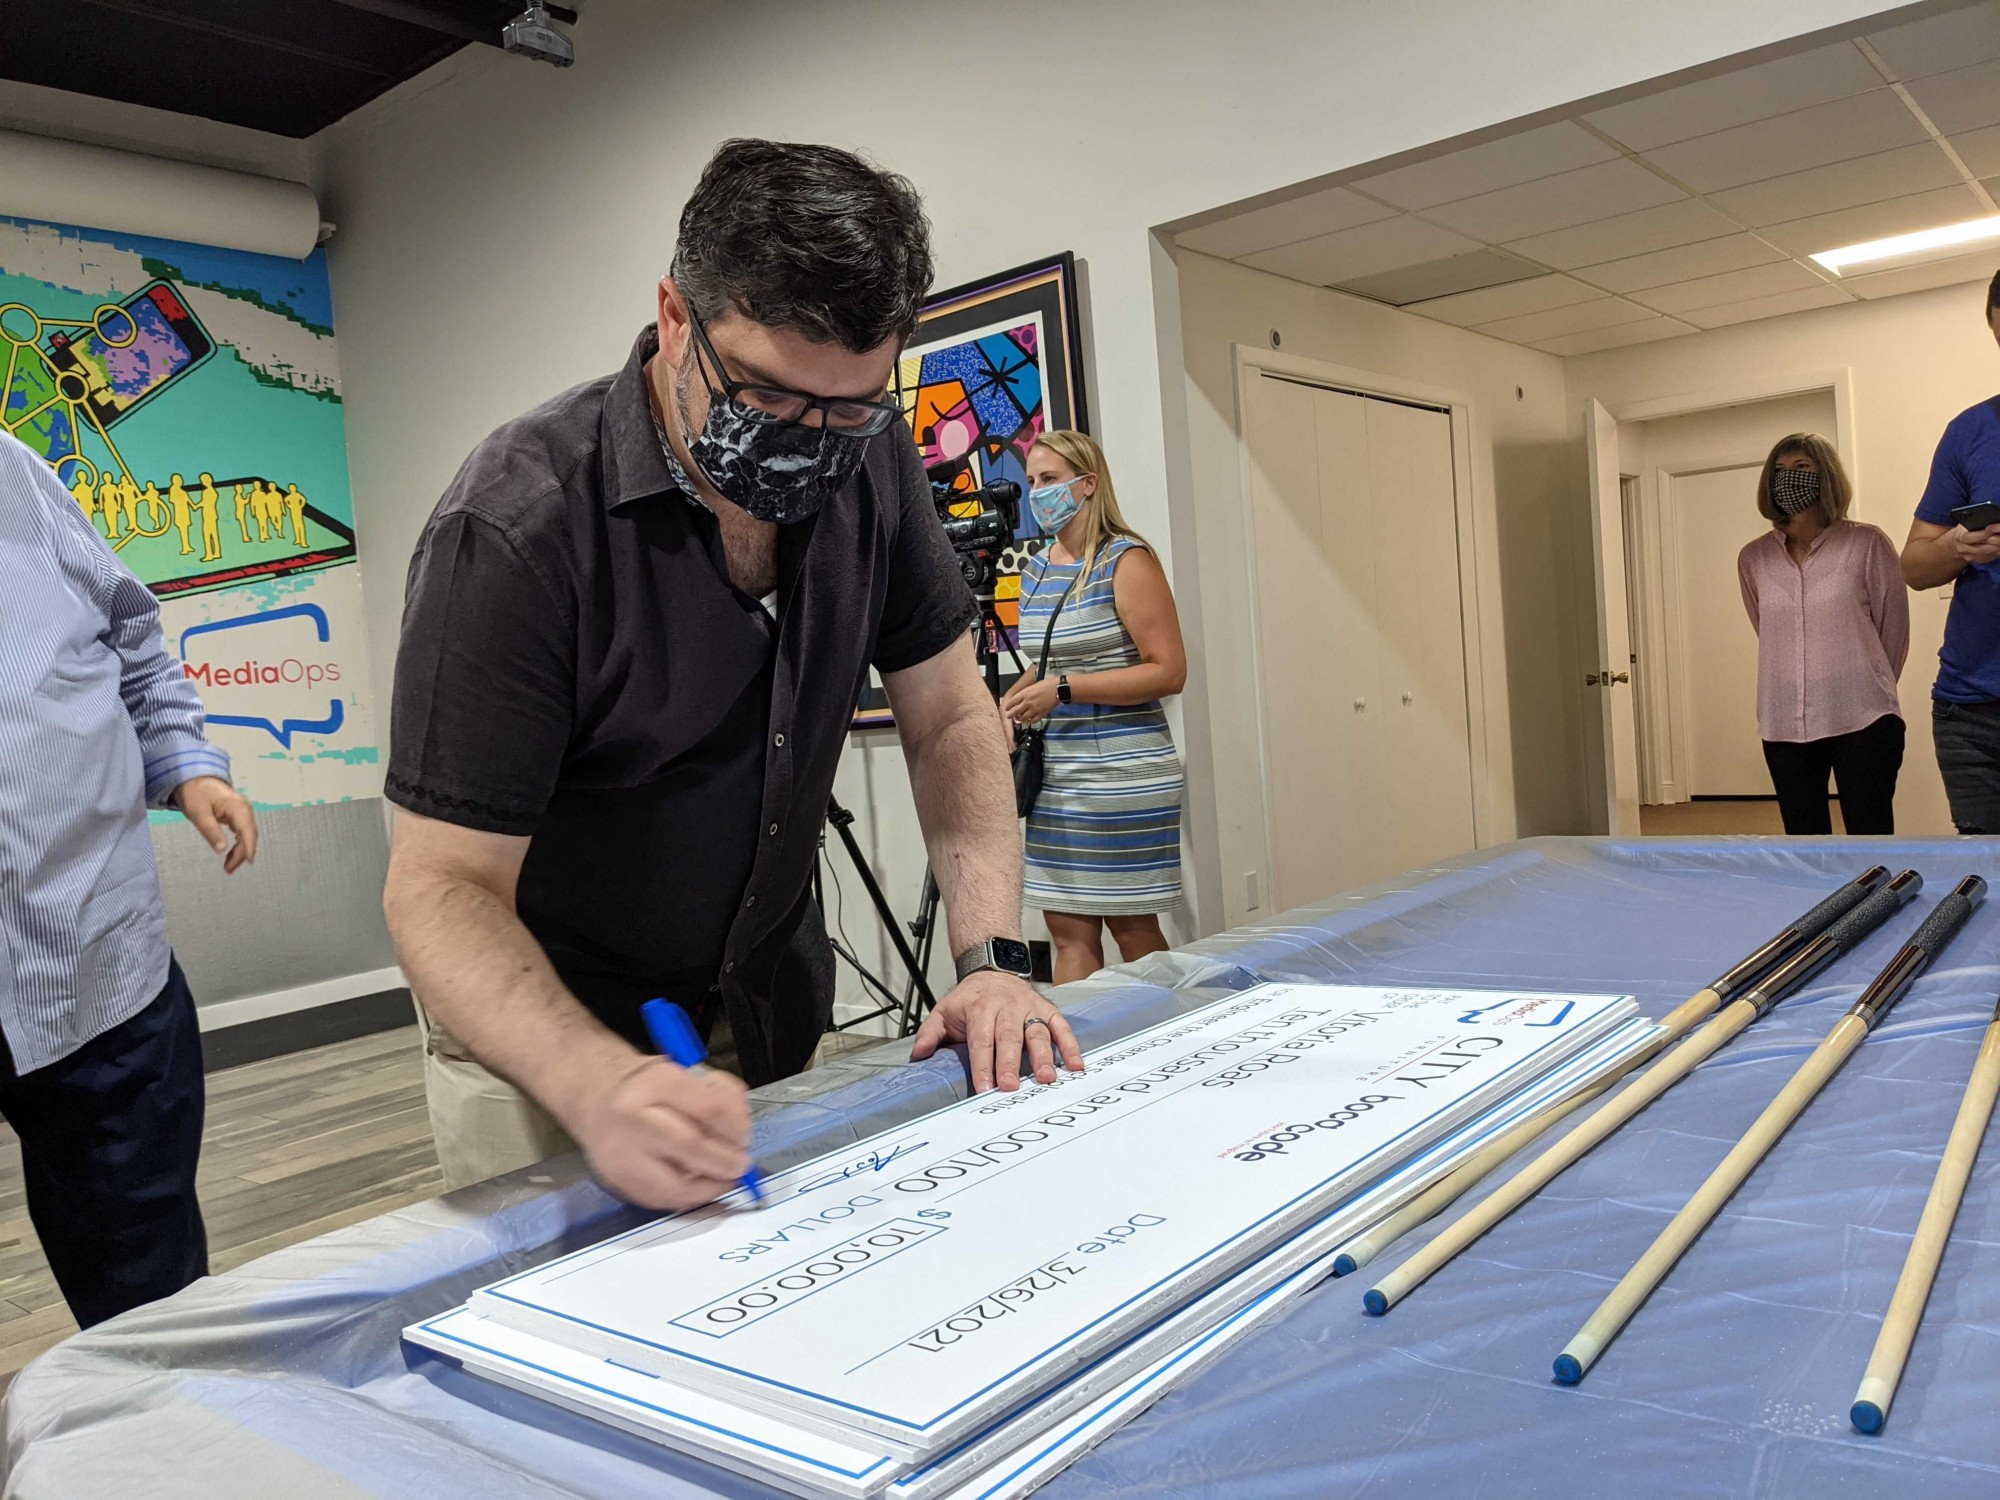 Todd Albert leans over a pool table at MediaOps headquarters to sign a giant scholarship check.